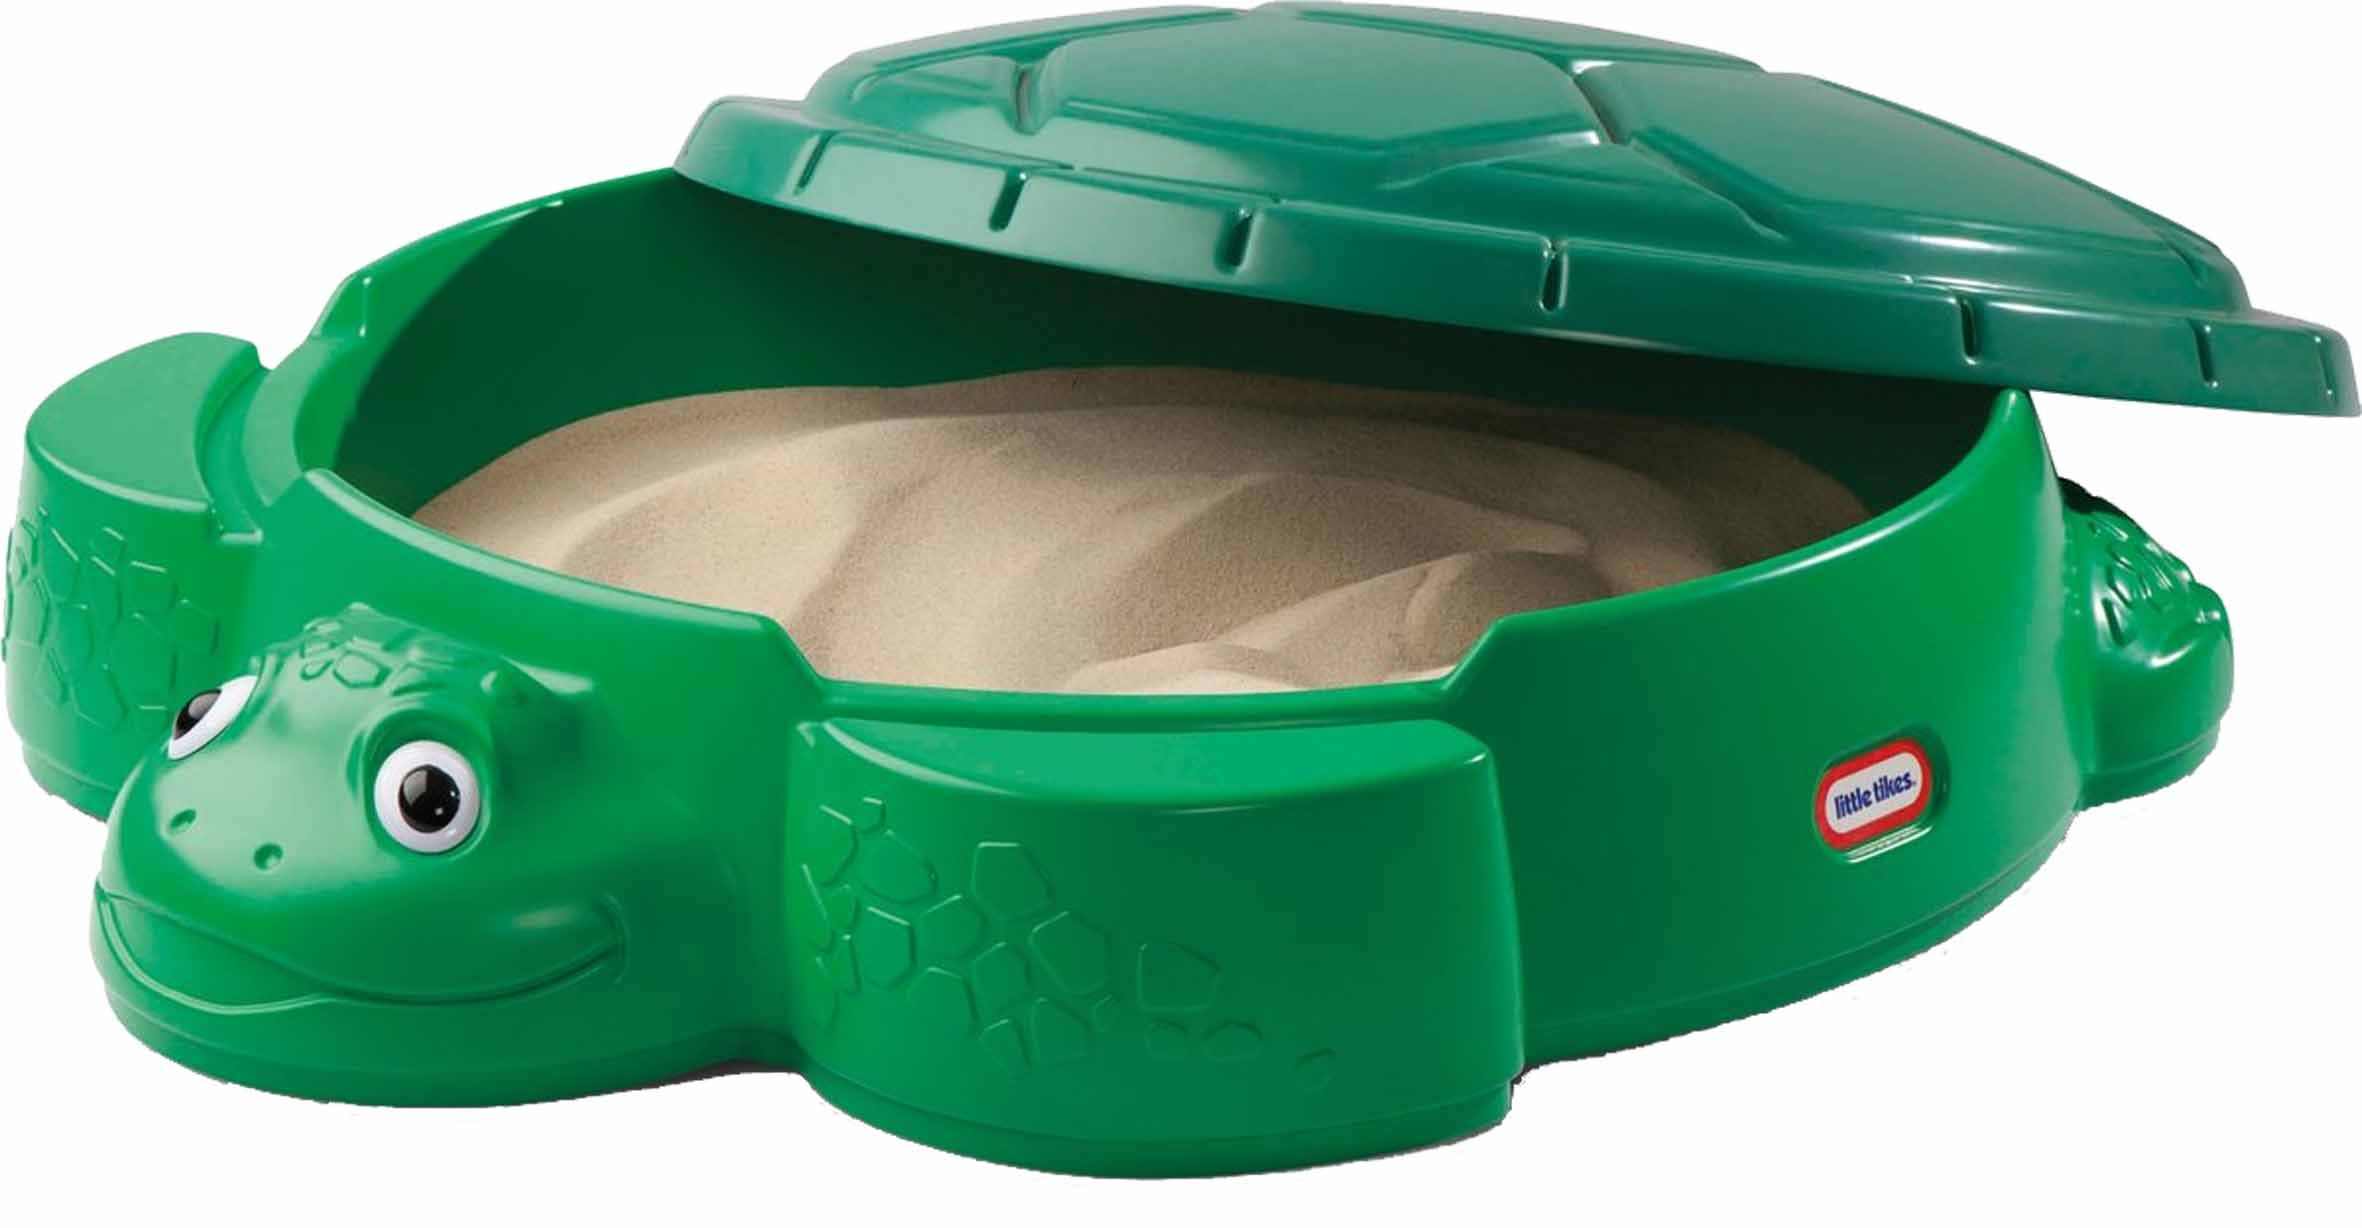 Mga Little Tikes Turtle Sandpit by Little Tikes